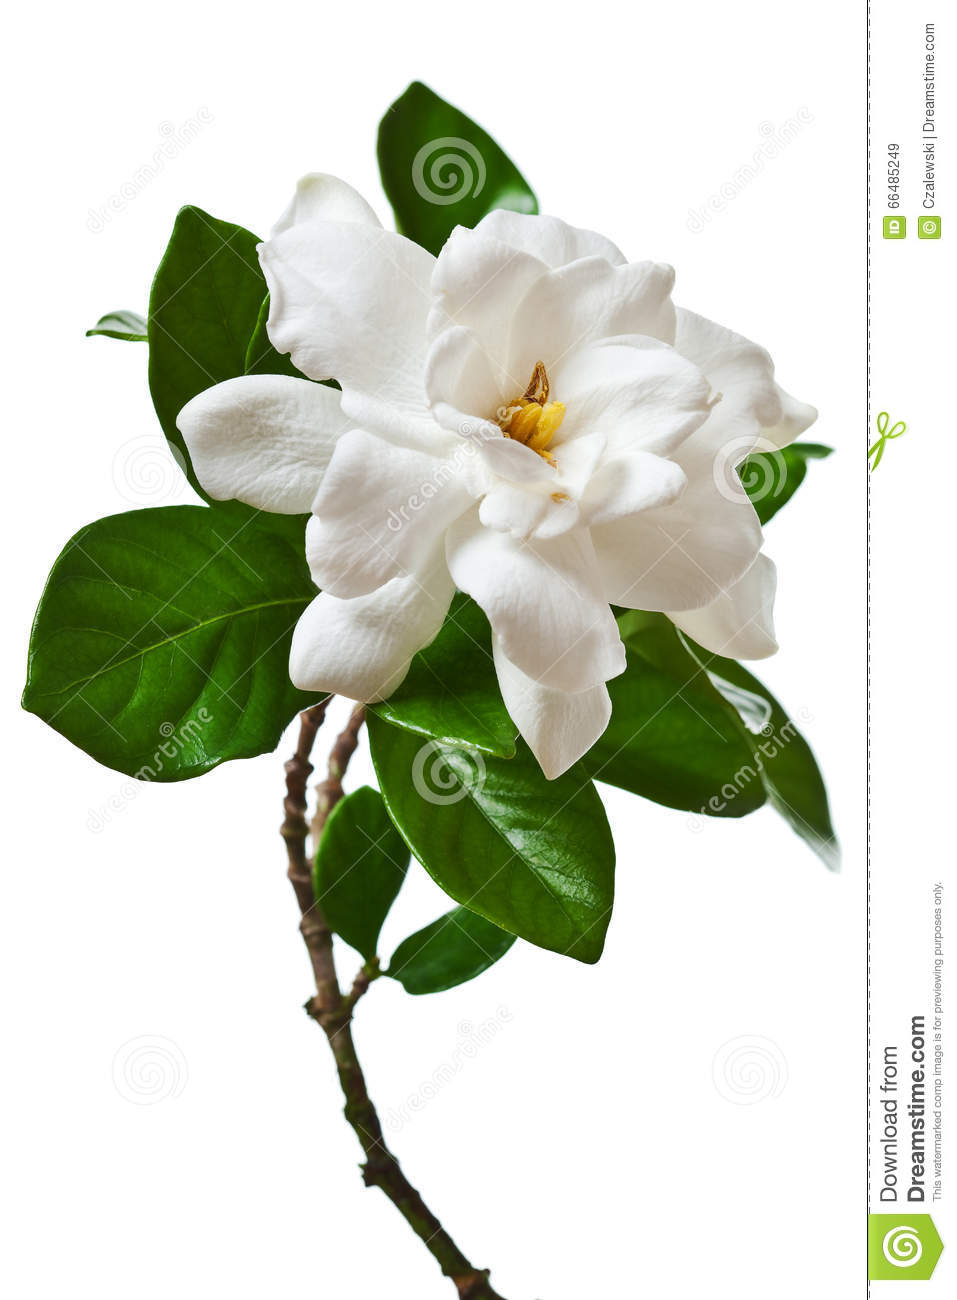 white gardenia flower isolated branch stock photo  image, Natural flower